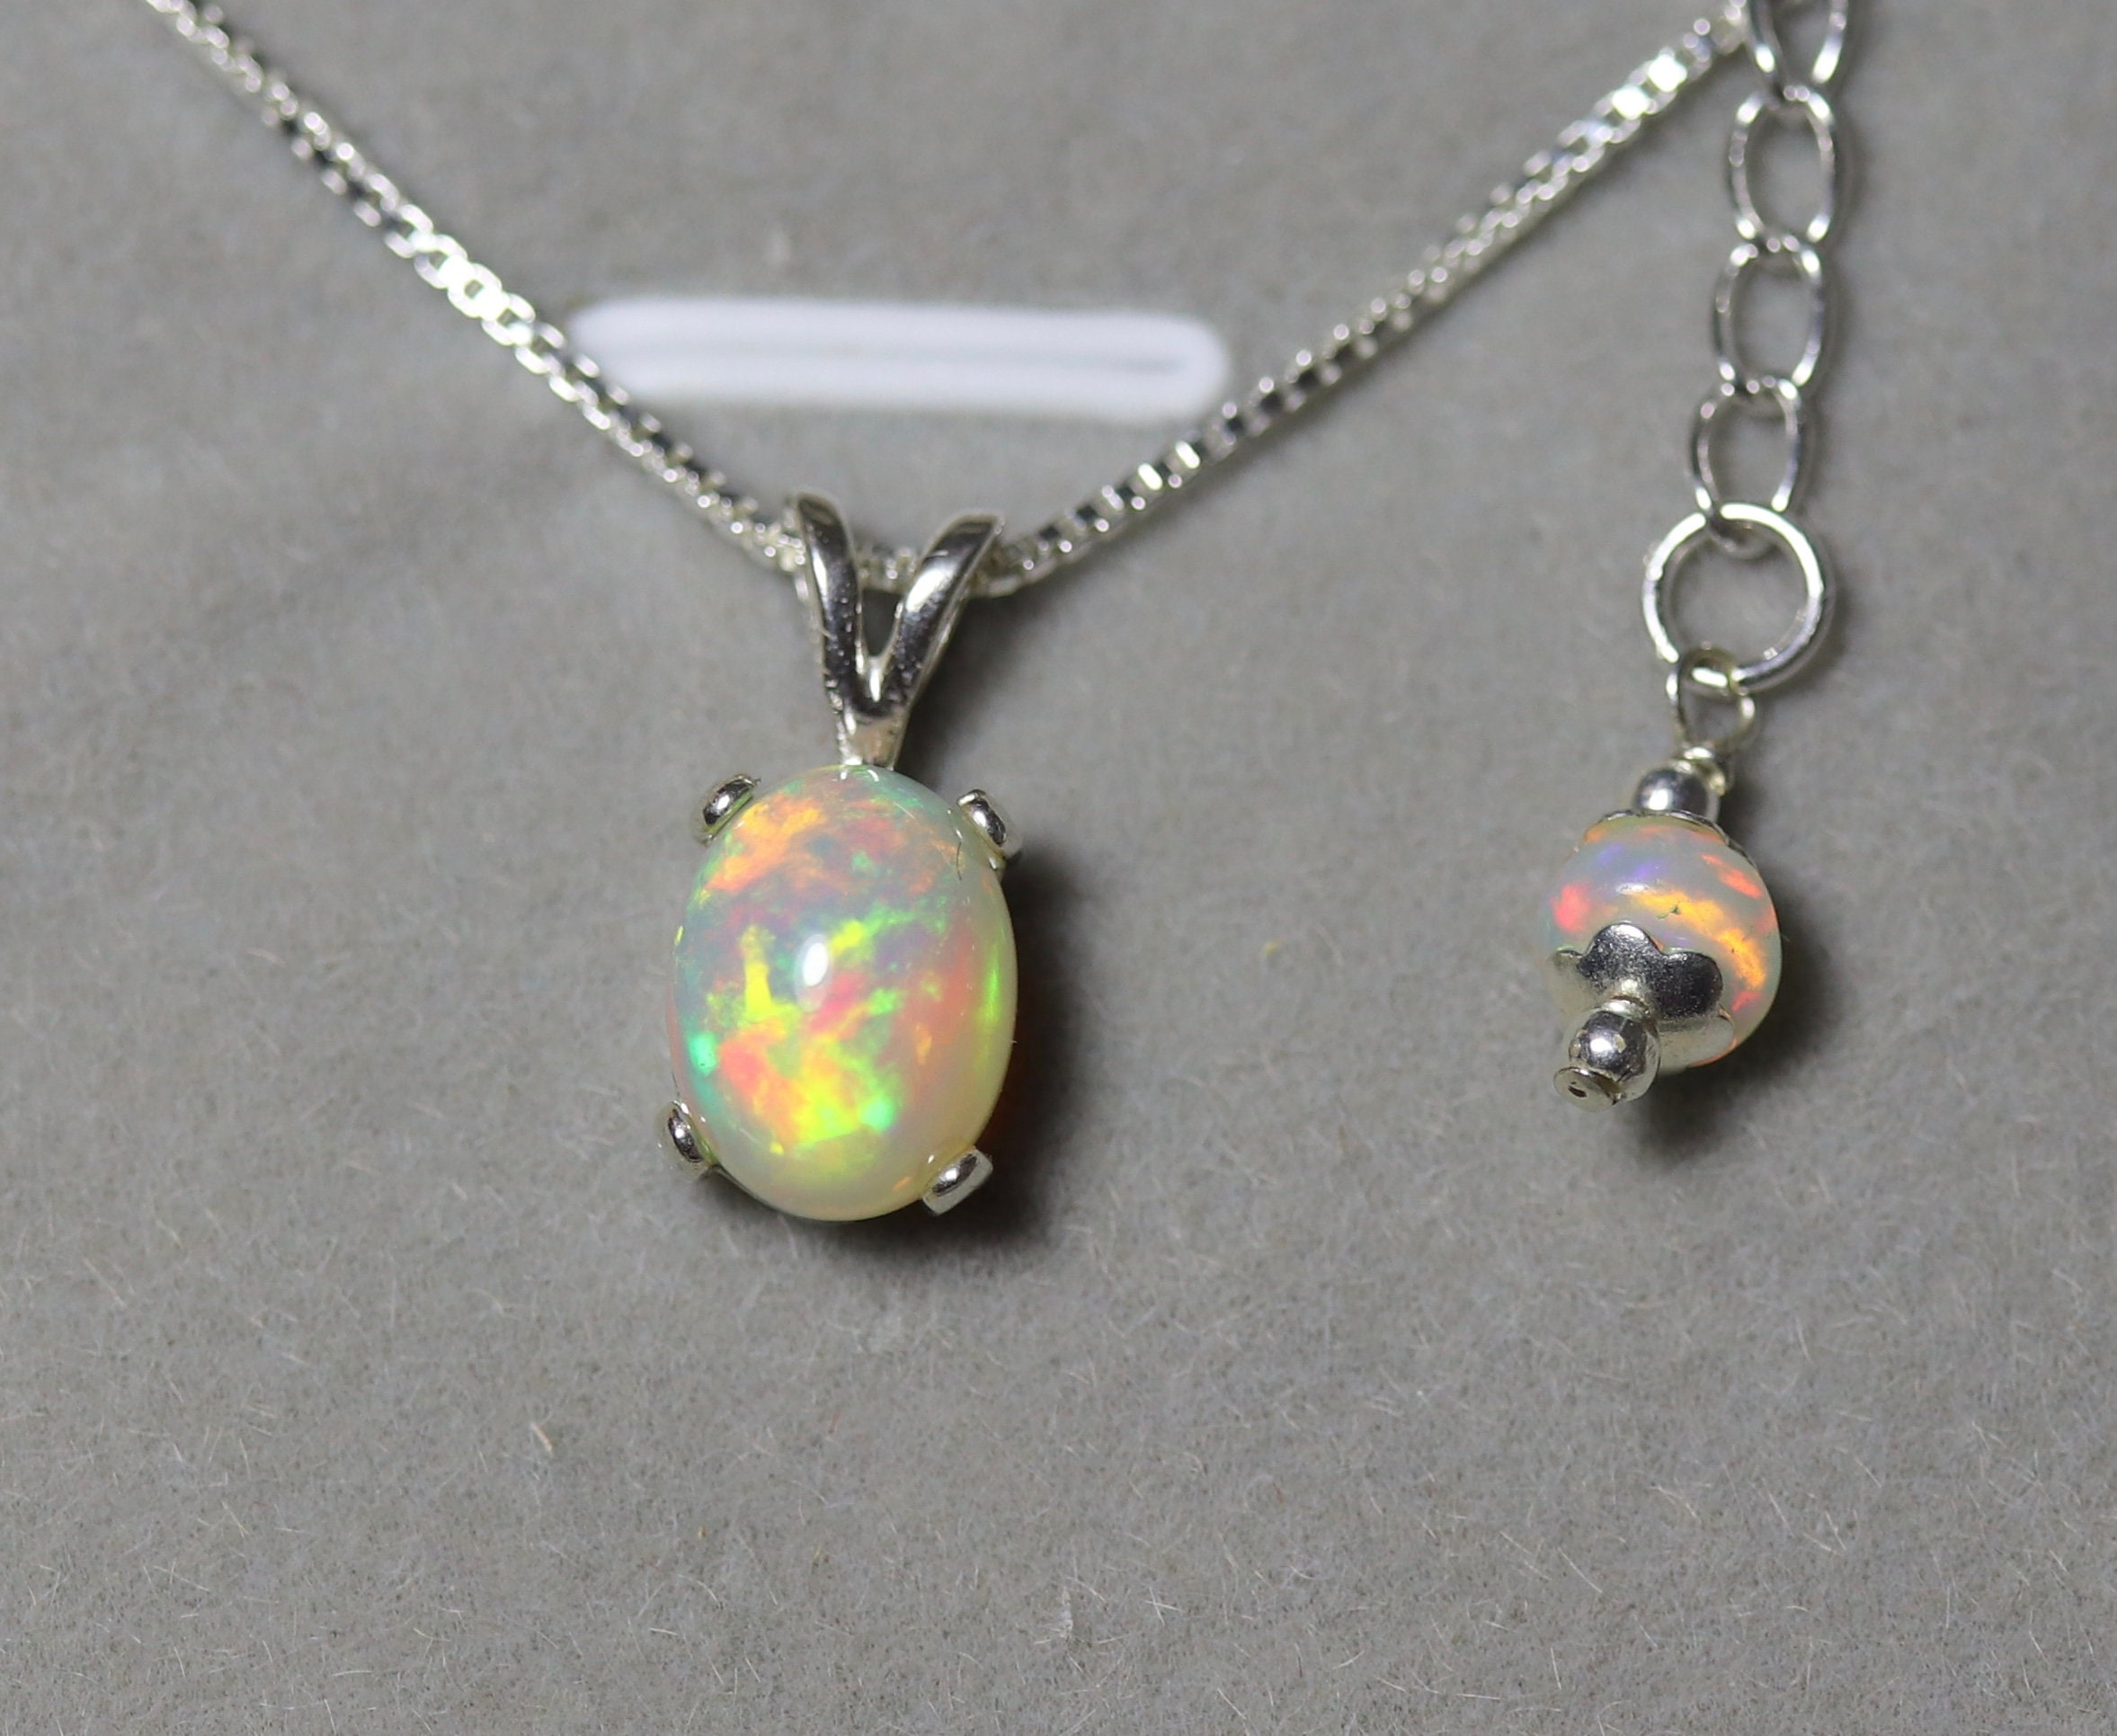 Delicate Round Opal /& 925 Sterling Silver Necklace Pendant Colourful Gift